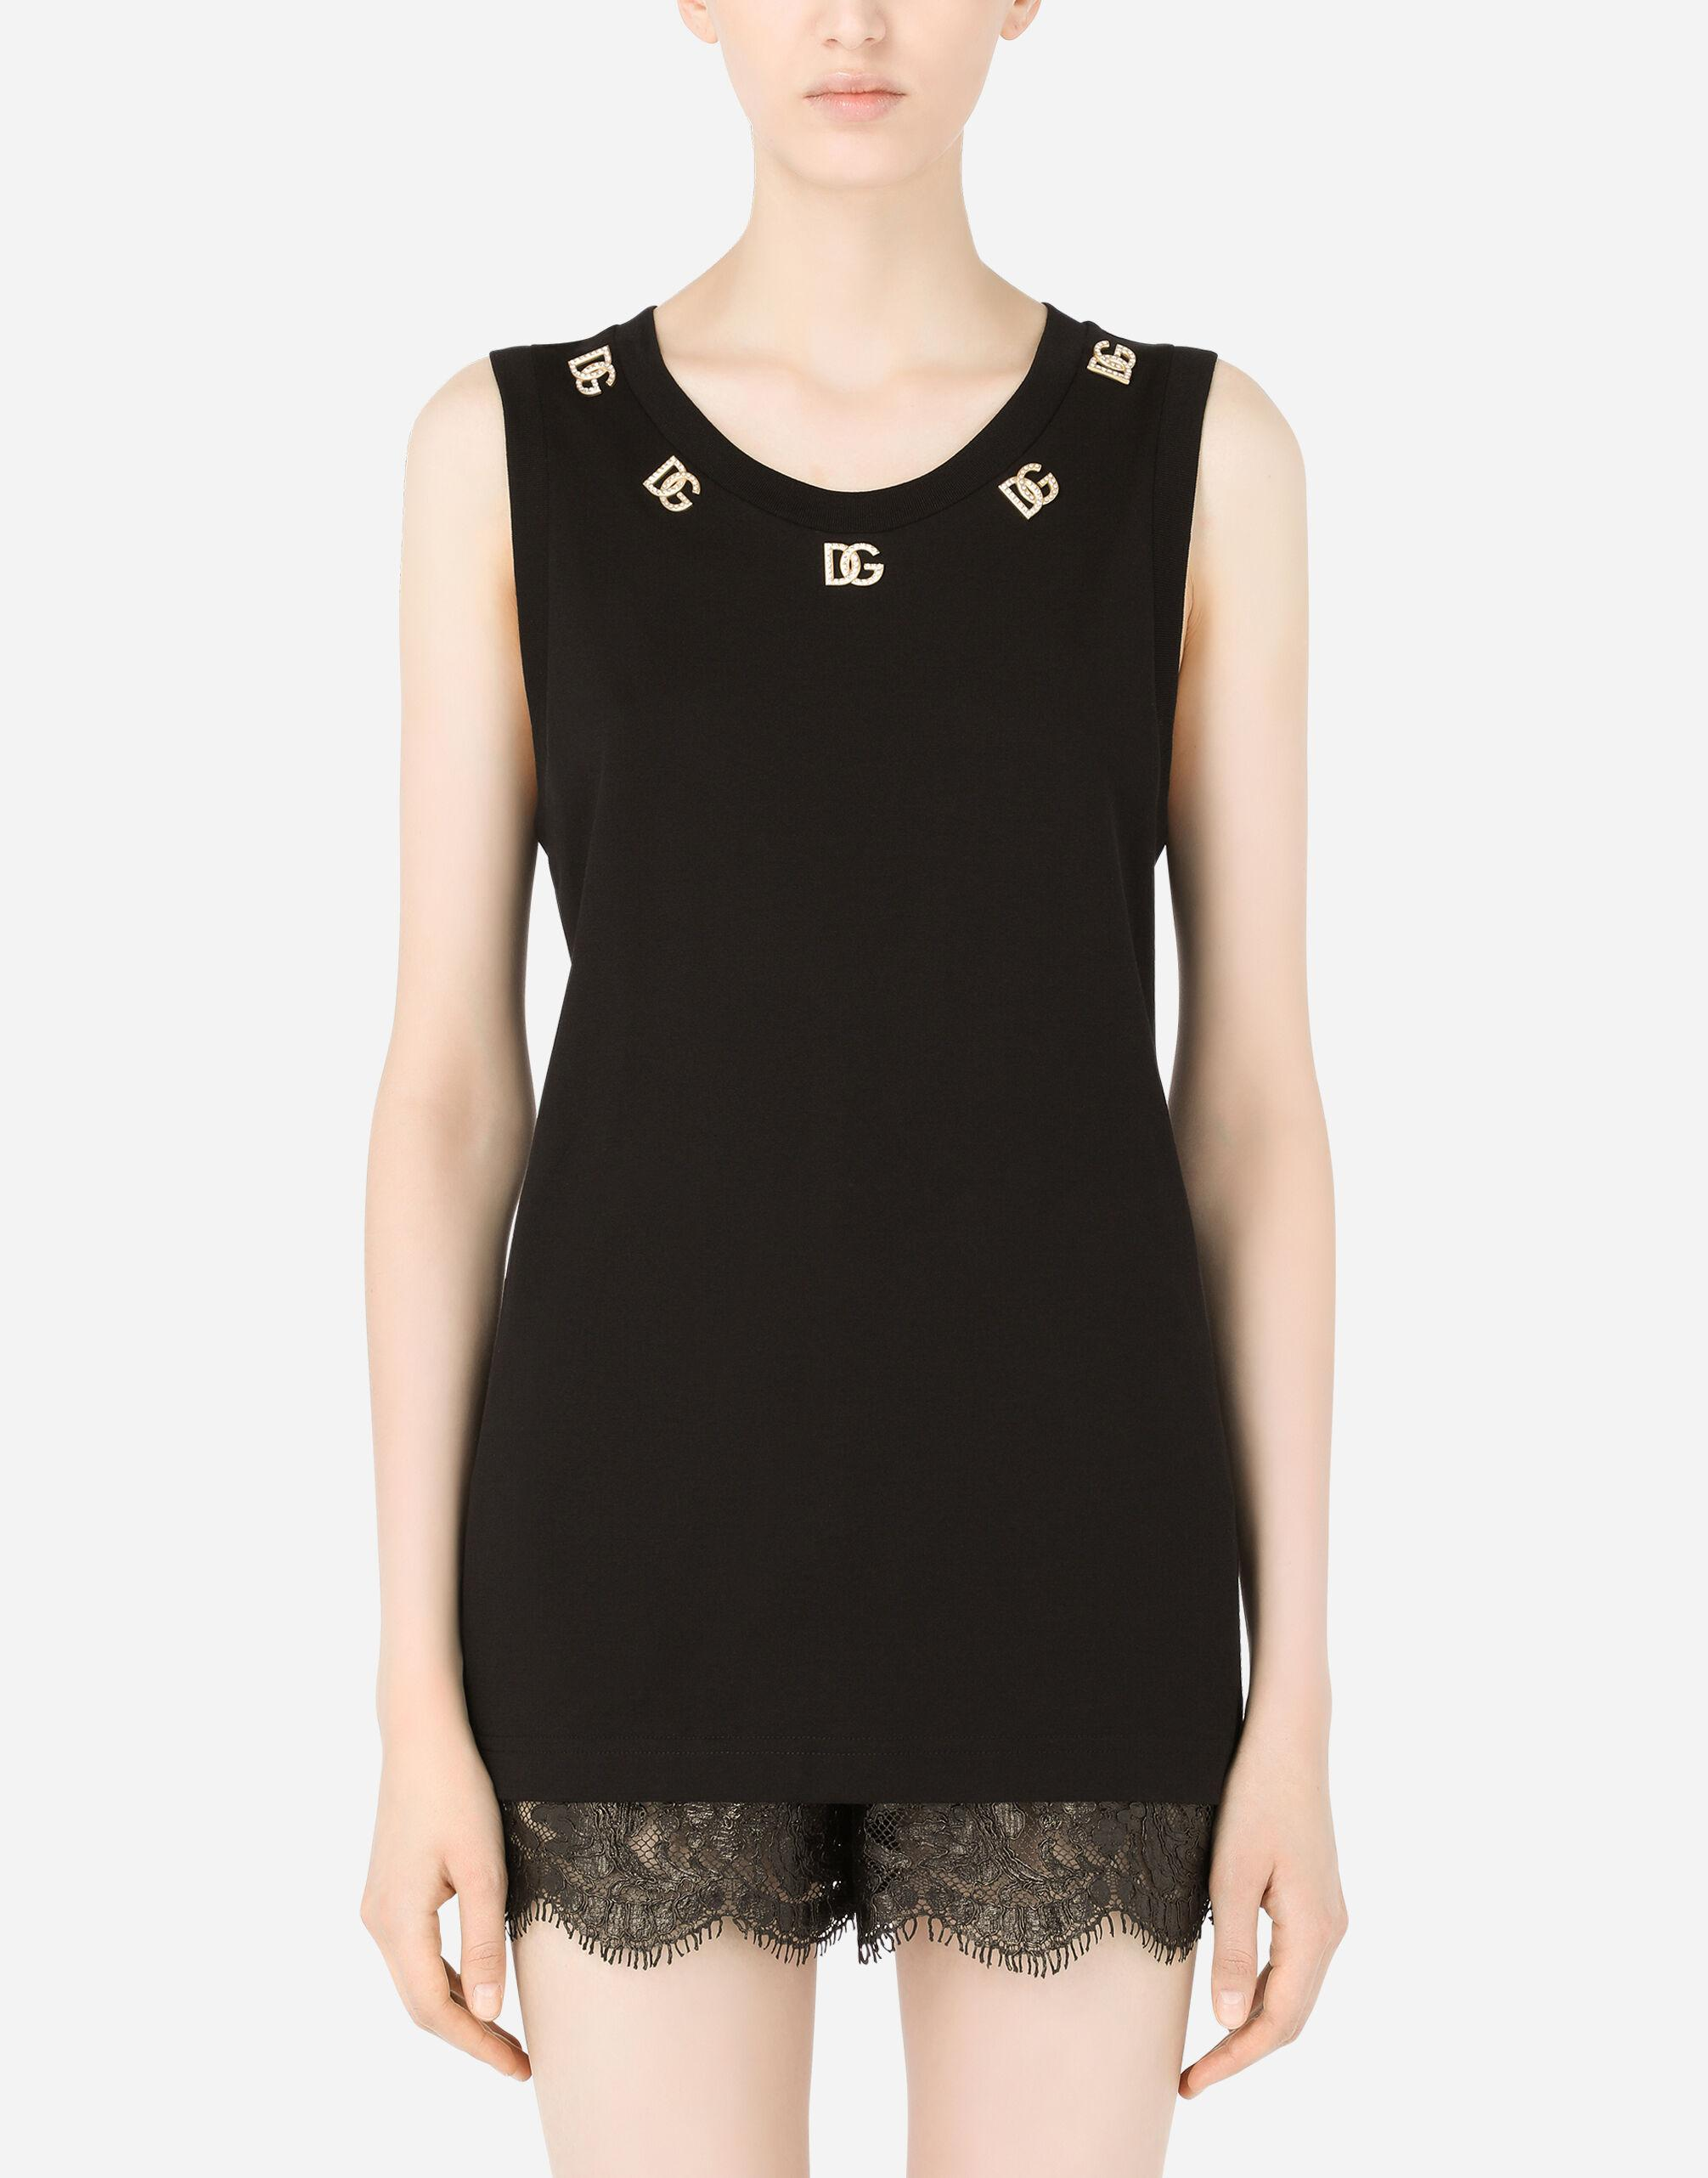 Jersey tank top with crystal DG embellishment